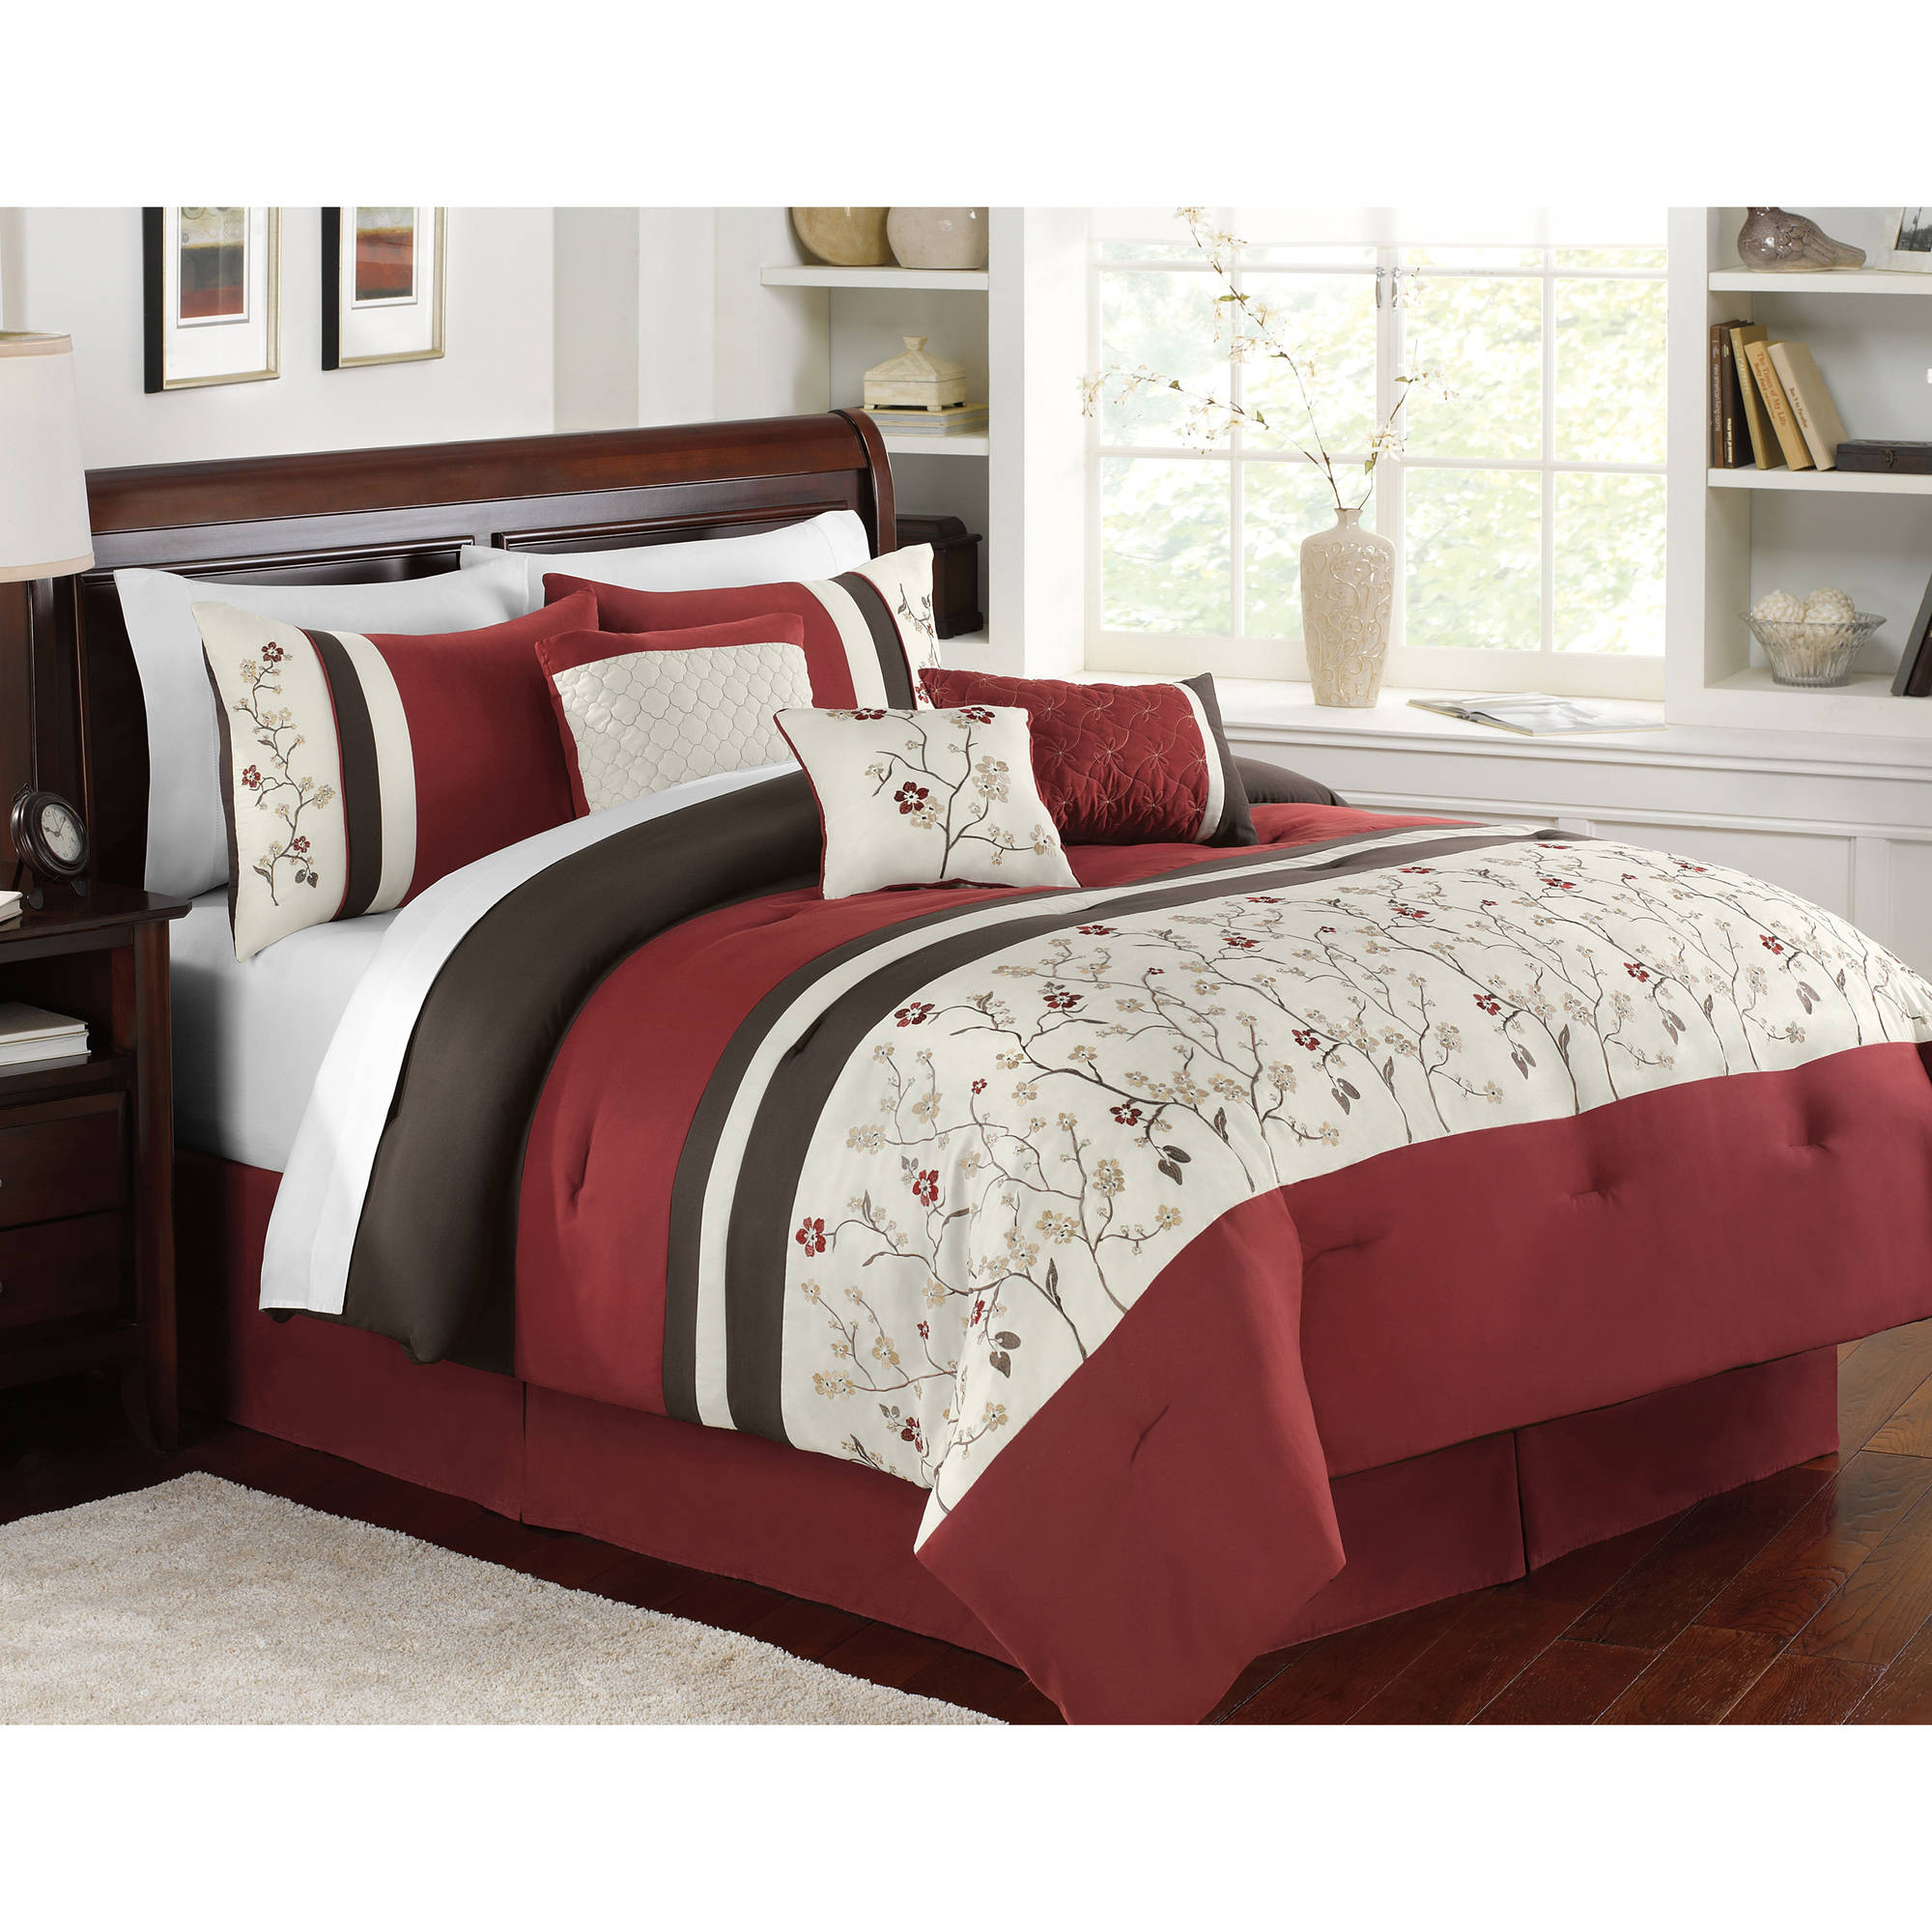 Better Homes And Gardens 7 Piece Burgundy Brown Vines Bedding Comforter Set